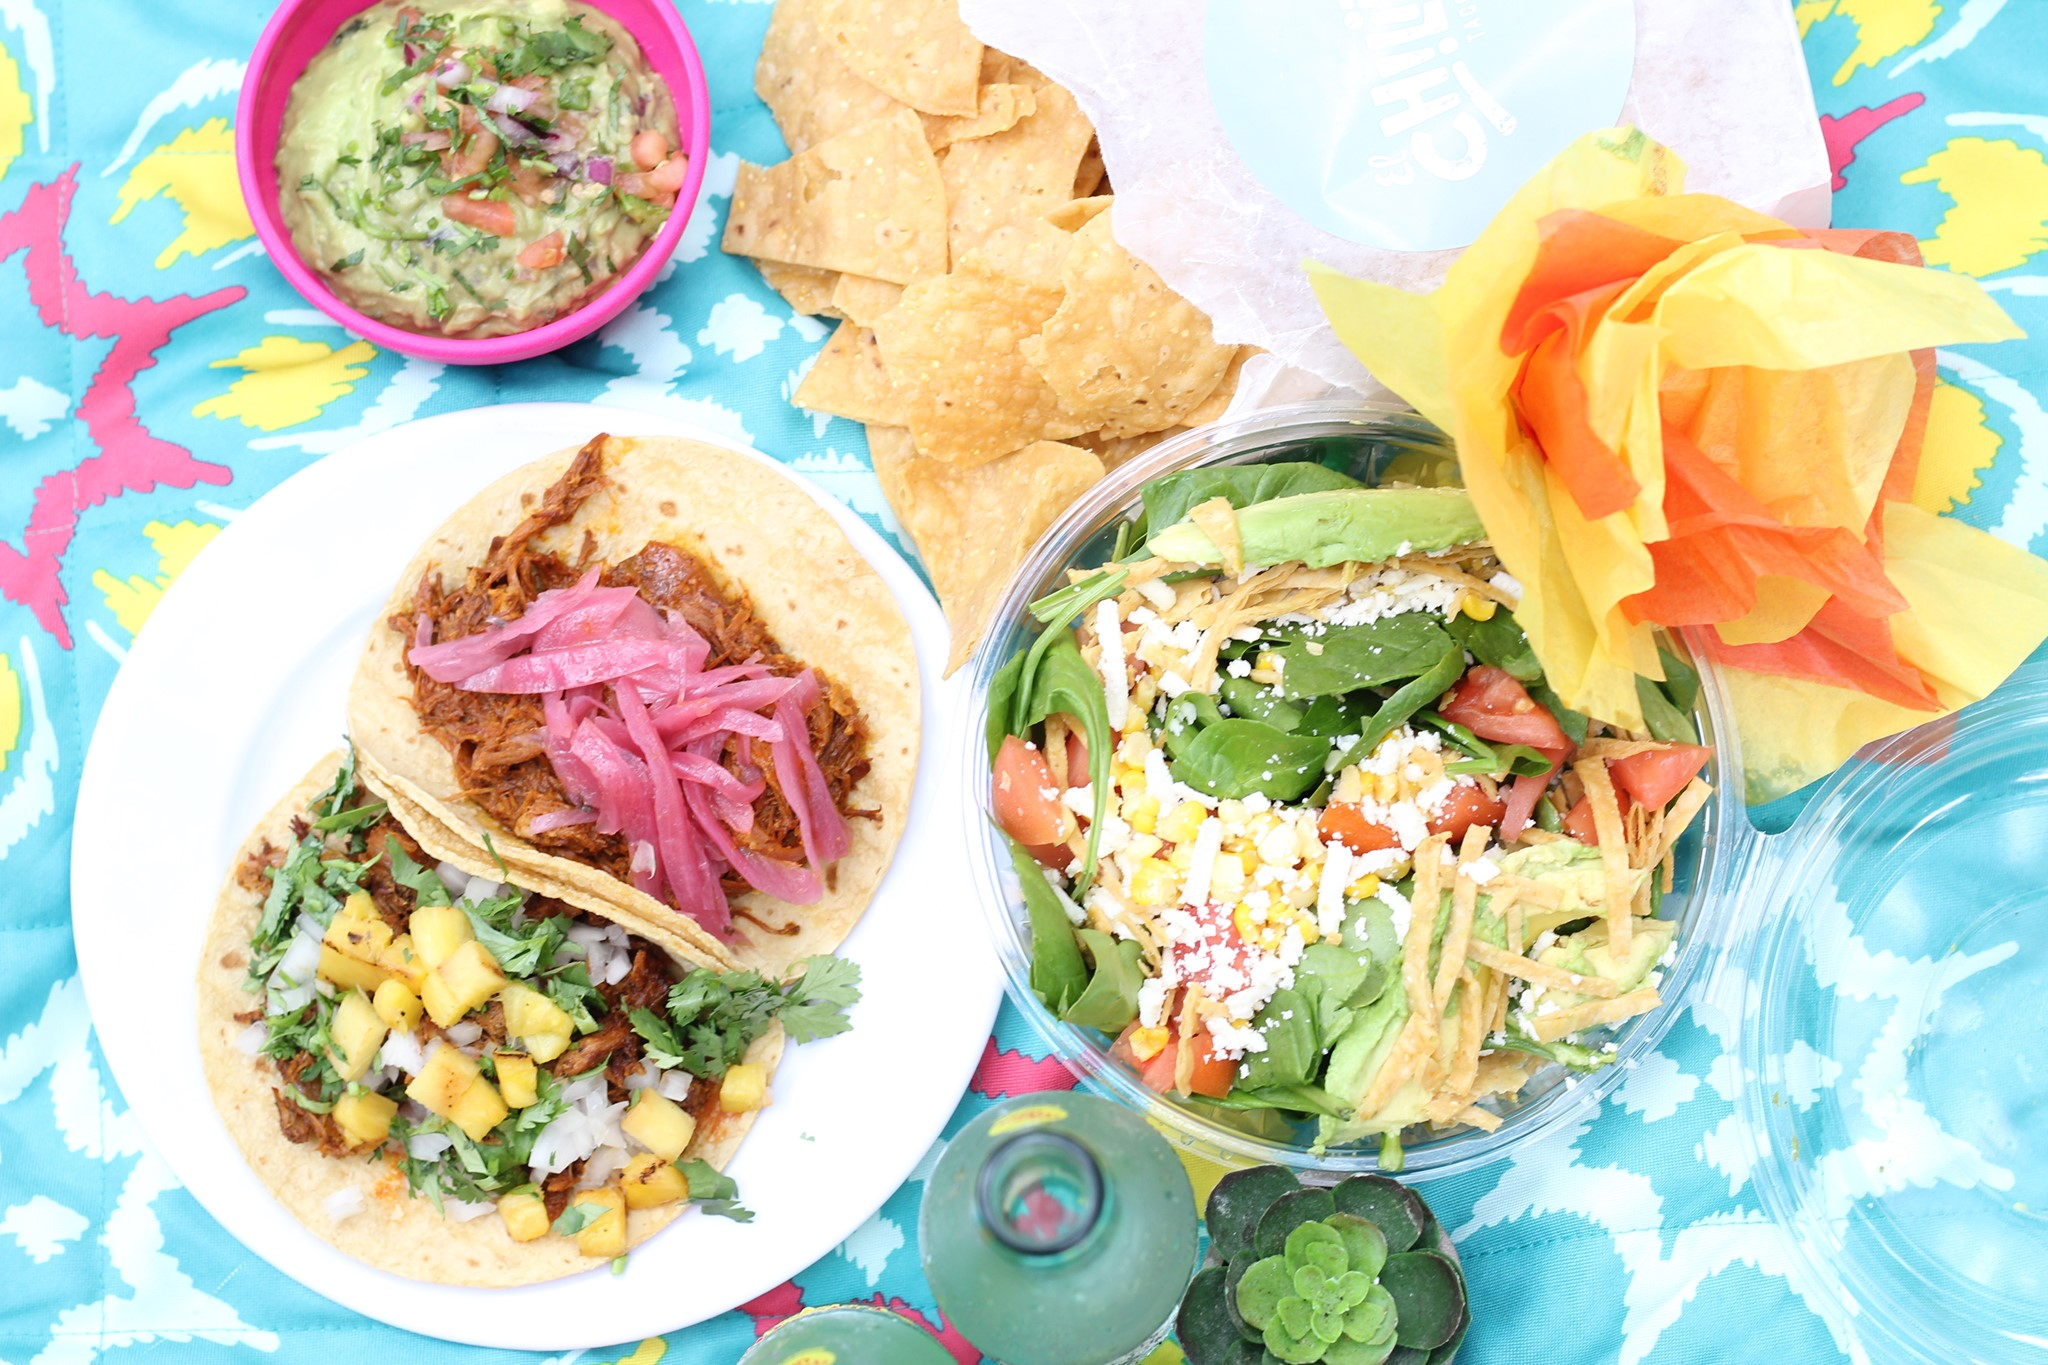 Tacos and dishes from El Chilito